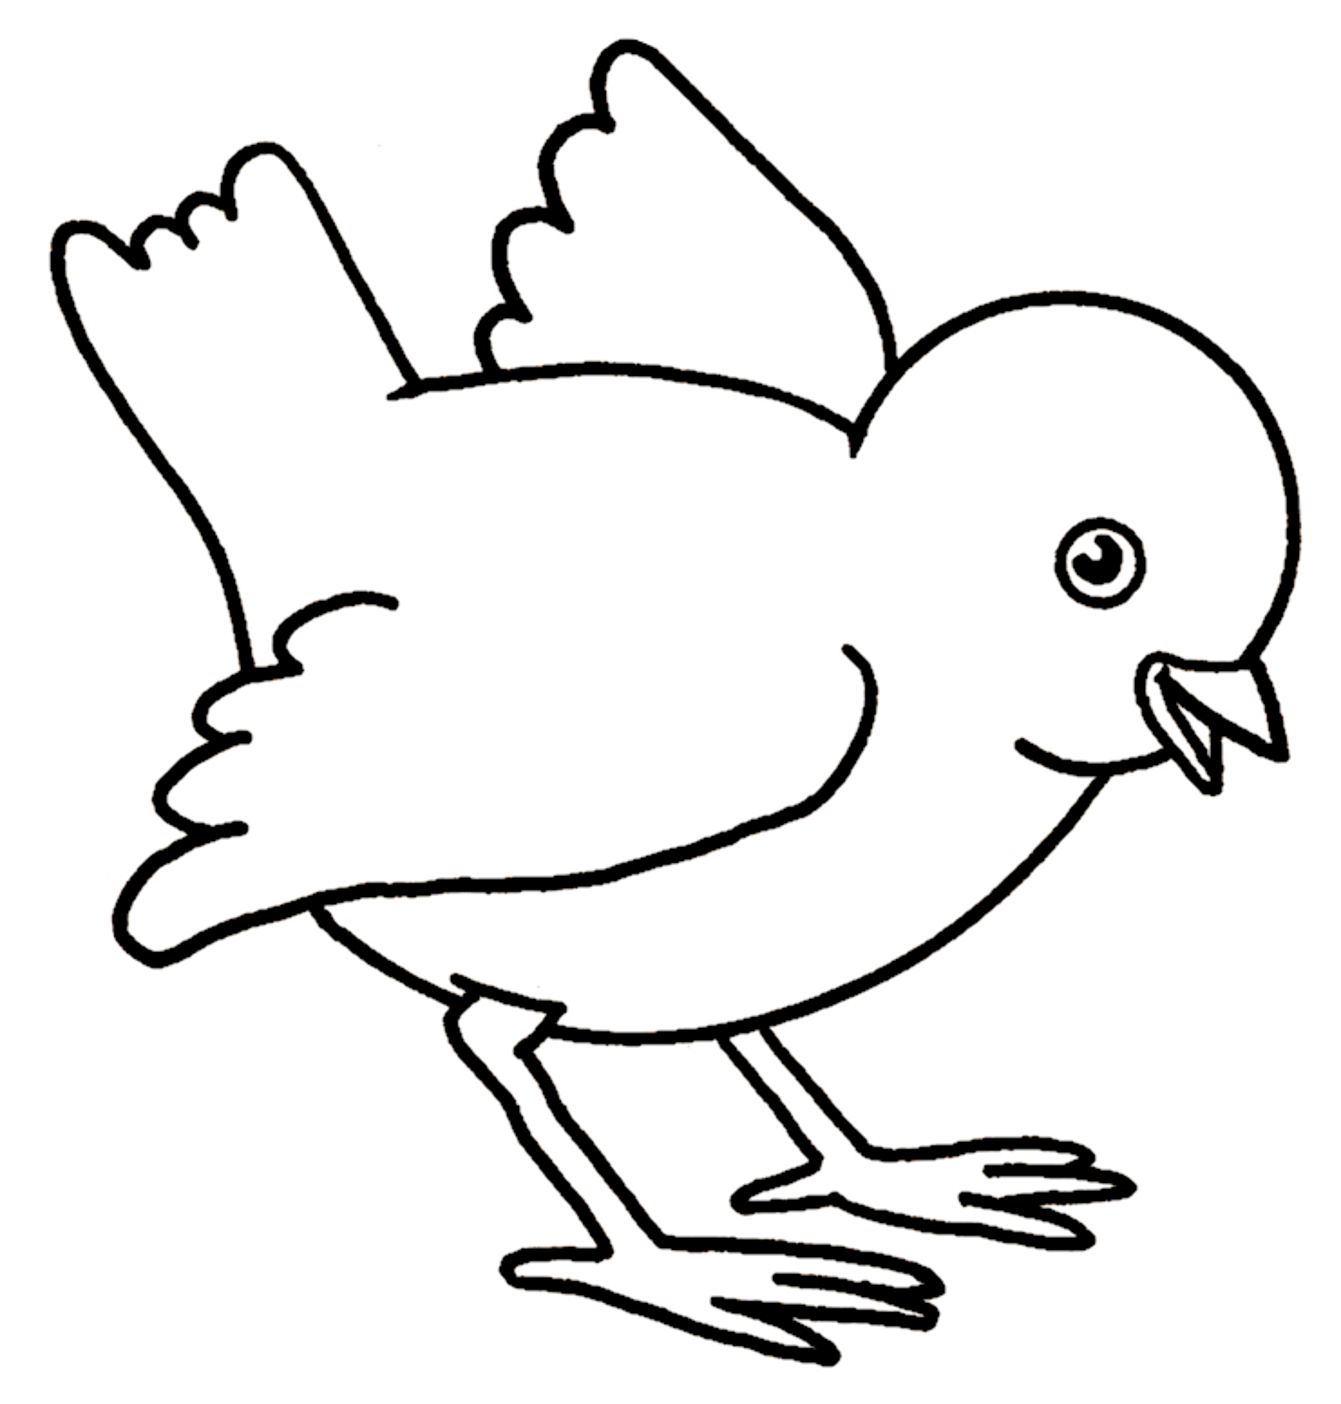 1341x1404 Cool Baby Chick Drawing Outline How To Make Hatching Iydunetwork